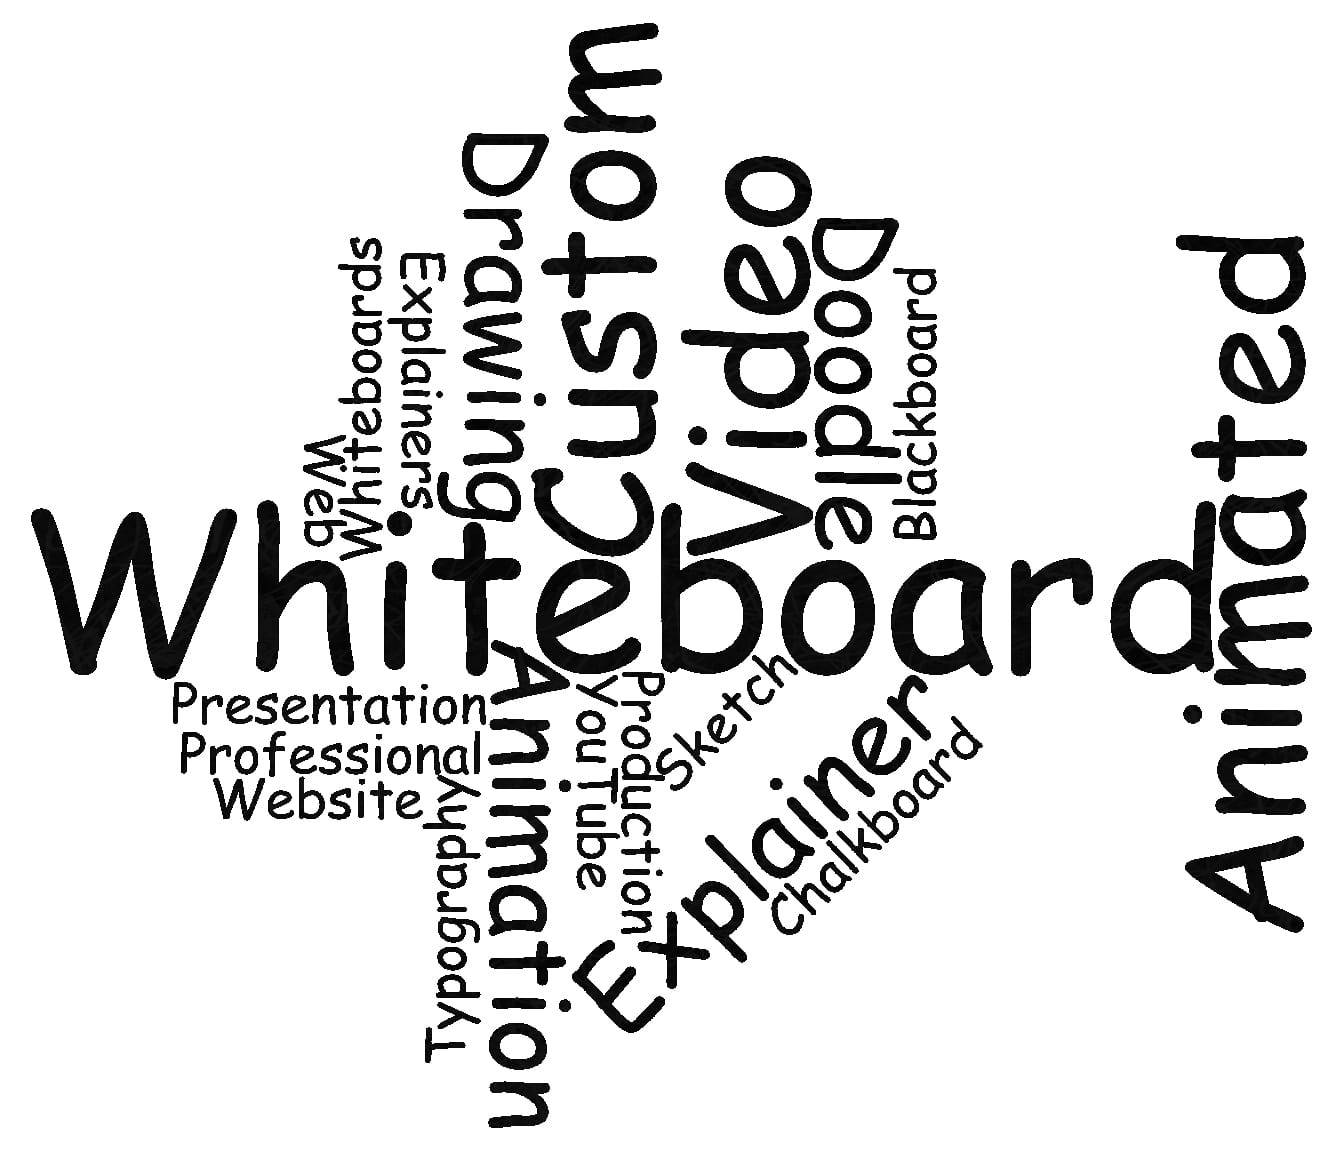 Whiteboard Video Wordcloud